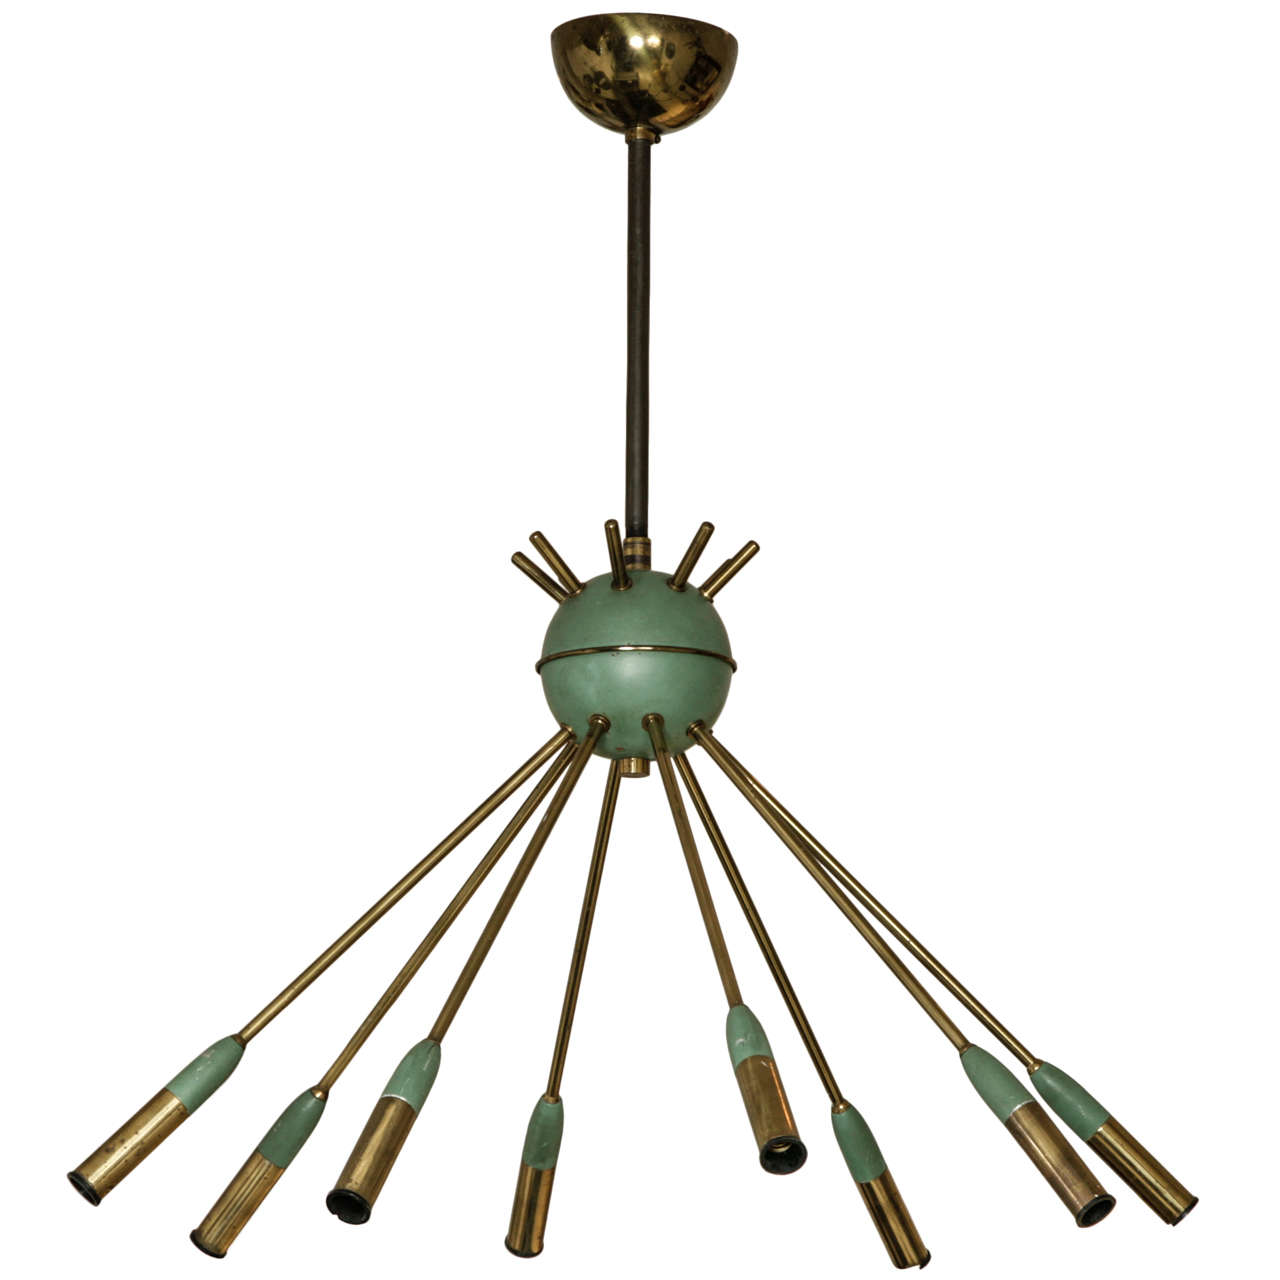 Italian design mid century ceiling light at 1stdibs for Mid century ceiling lamp